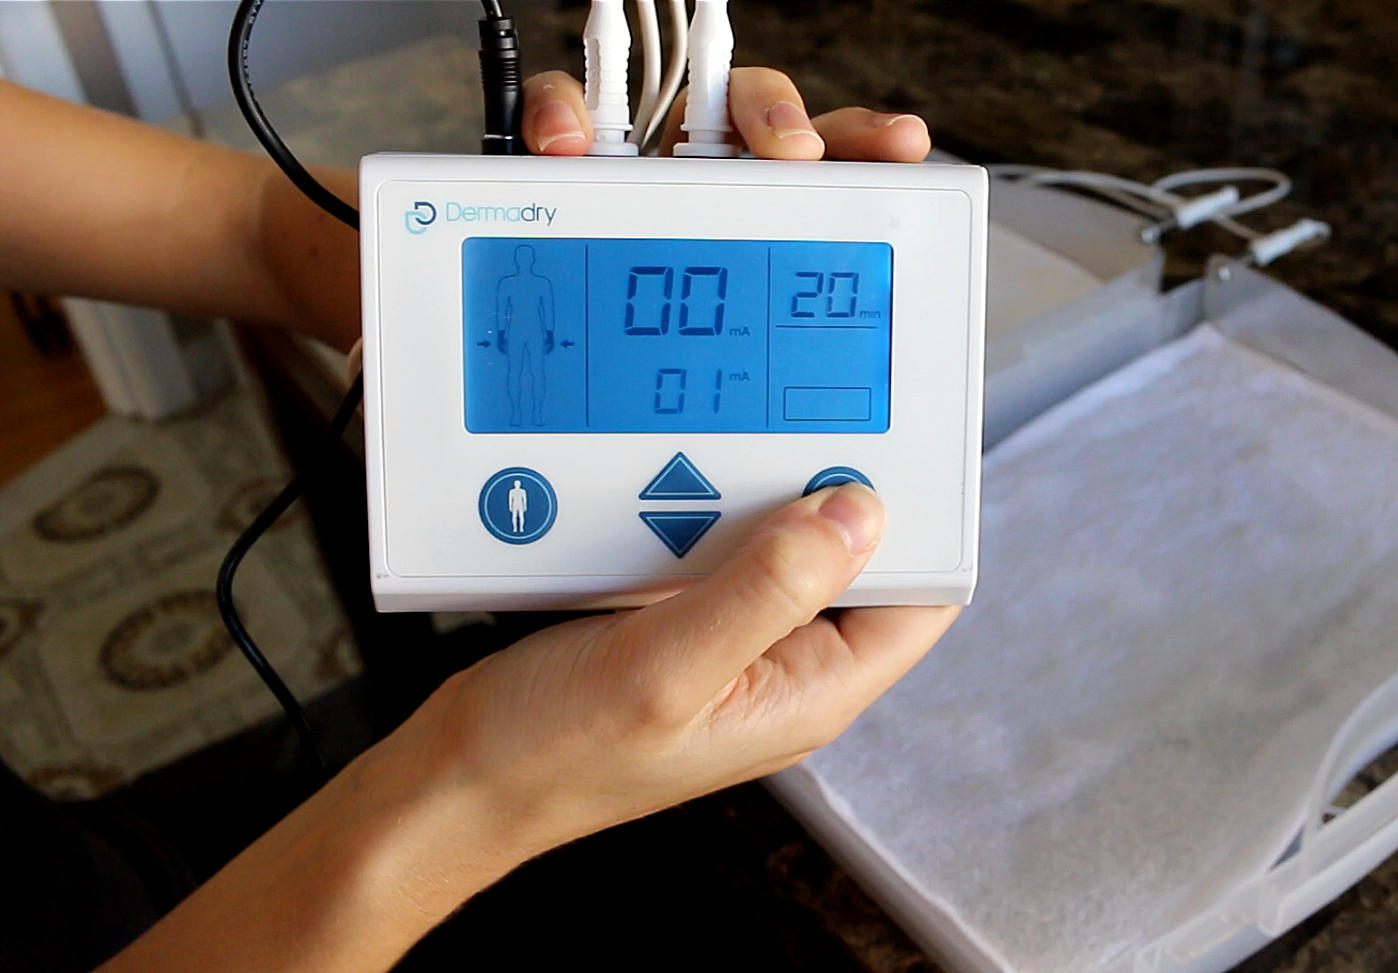 Dermadry Iontophoresis Machine Controller